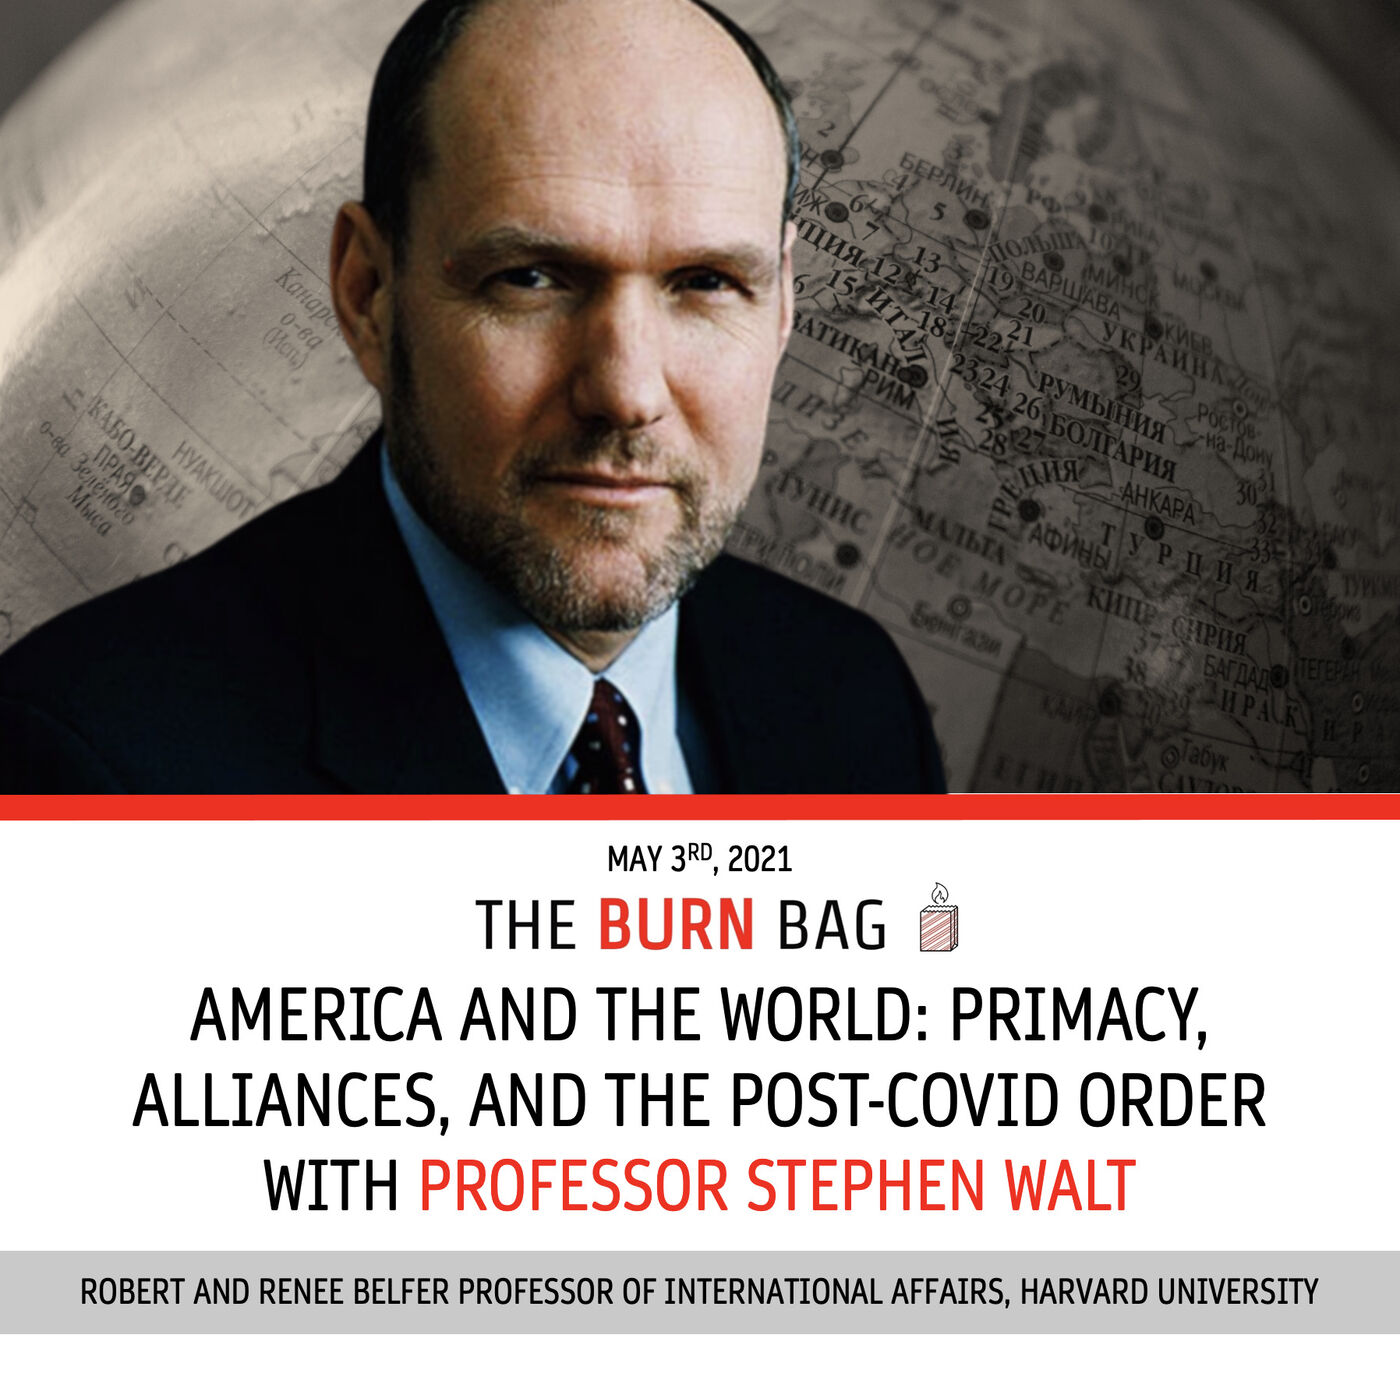 America and the World: Primacy, Alliances, and the Post-COVID Order with Professor Stephen Walt